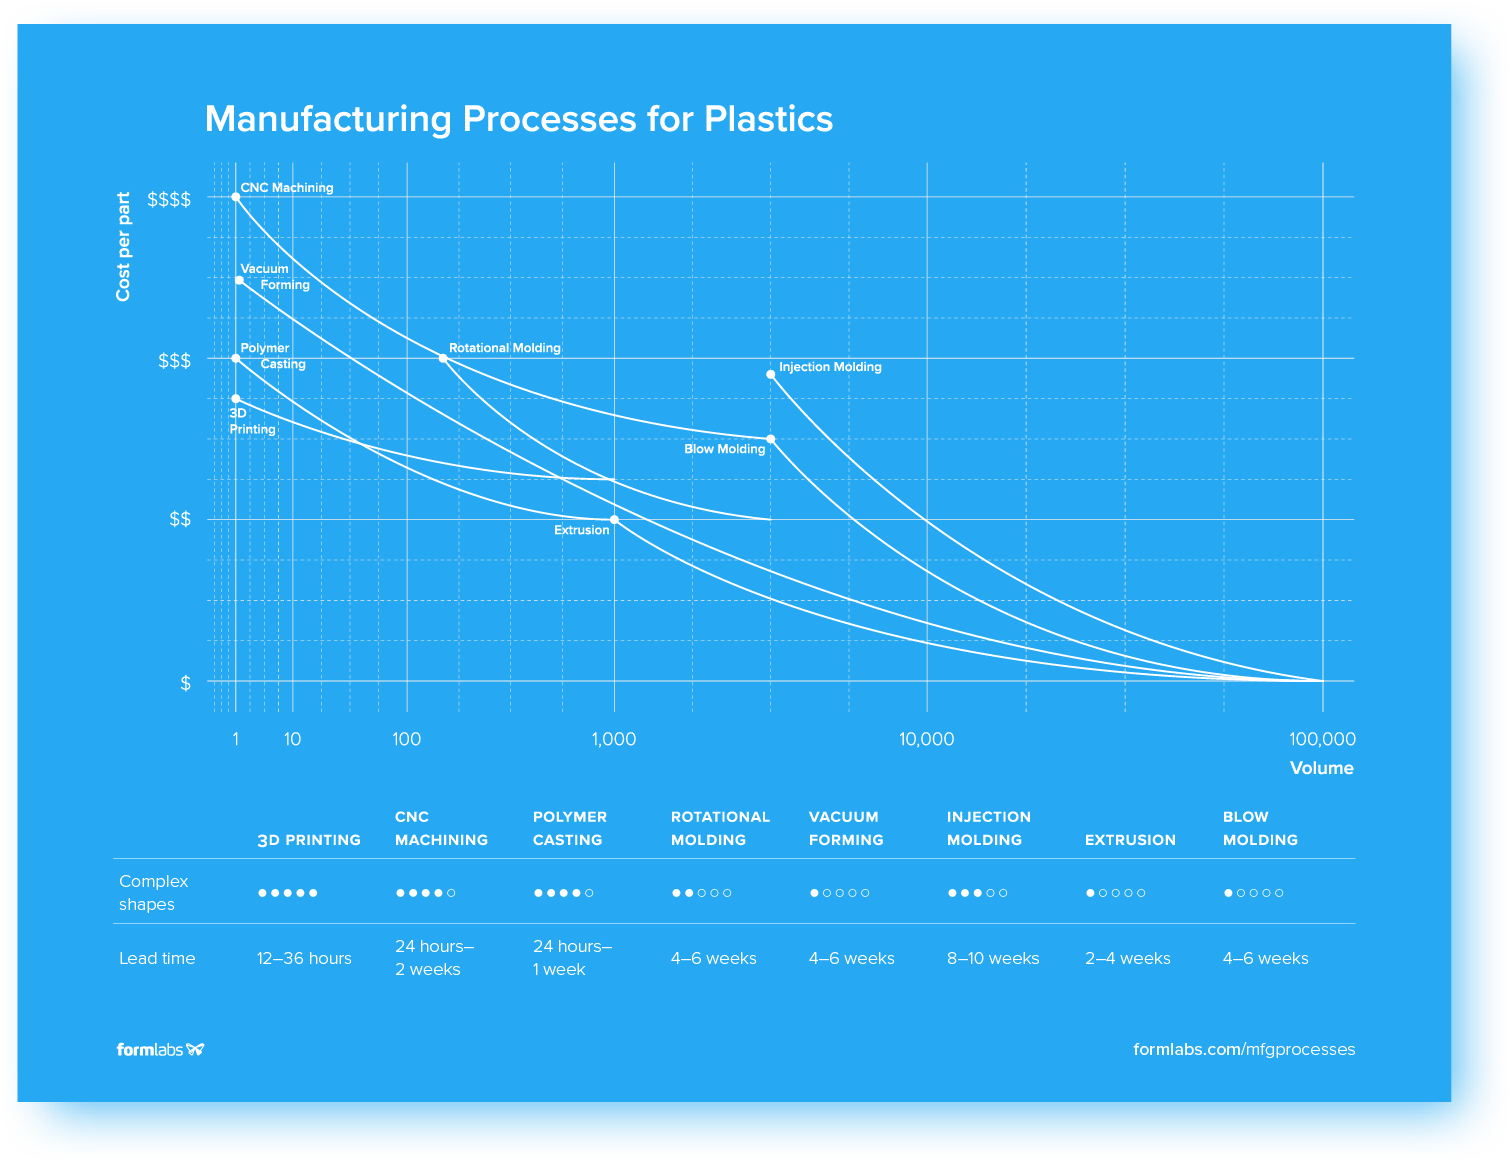 Manufacturing Processes for Plastics Infographic